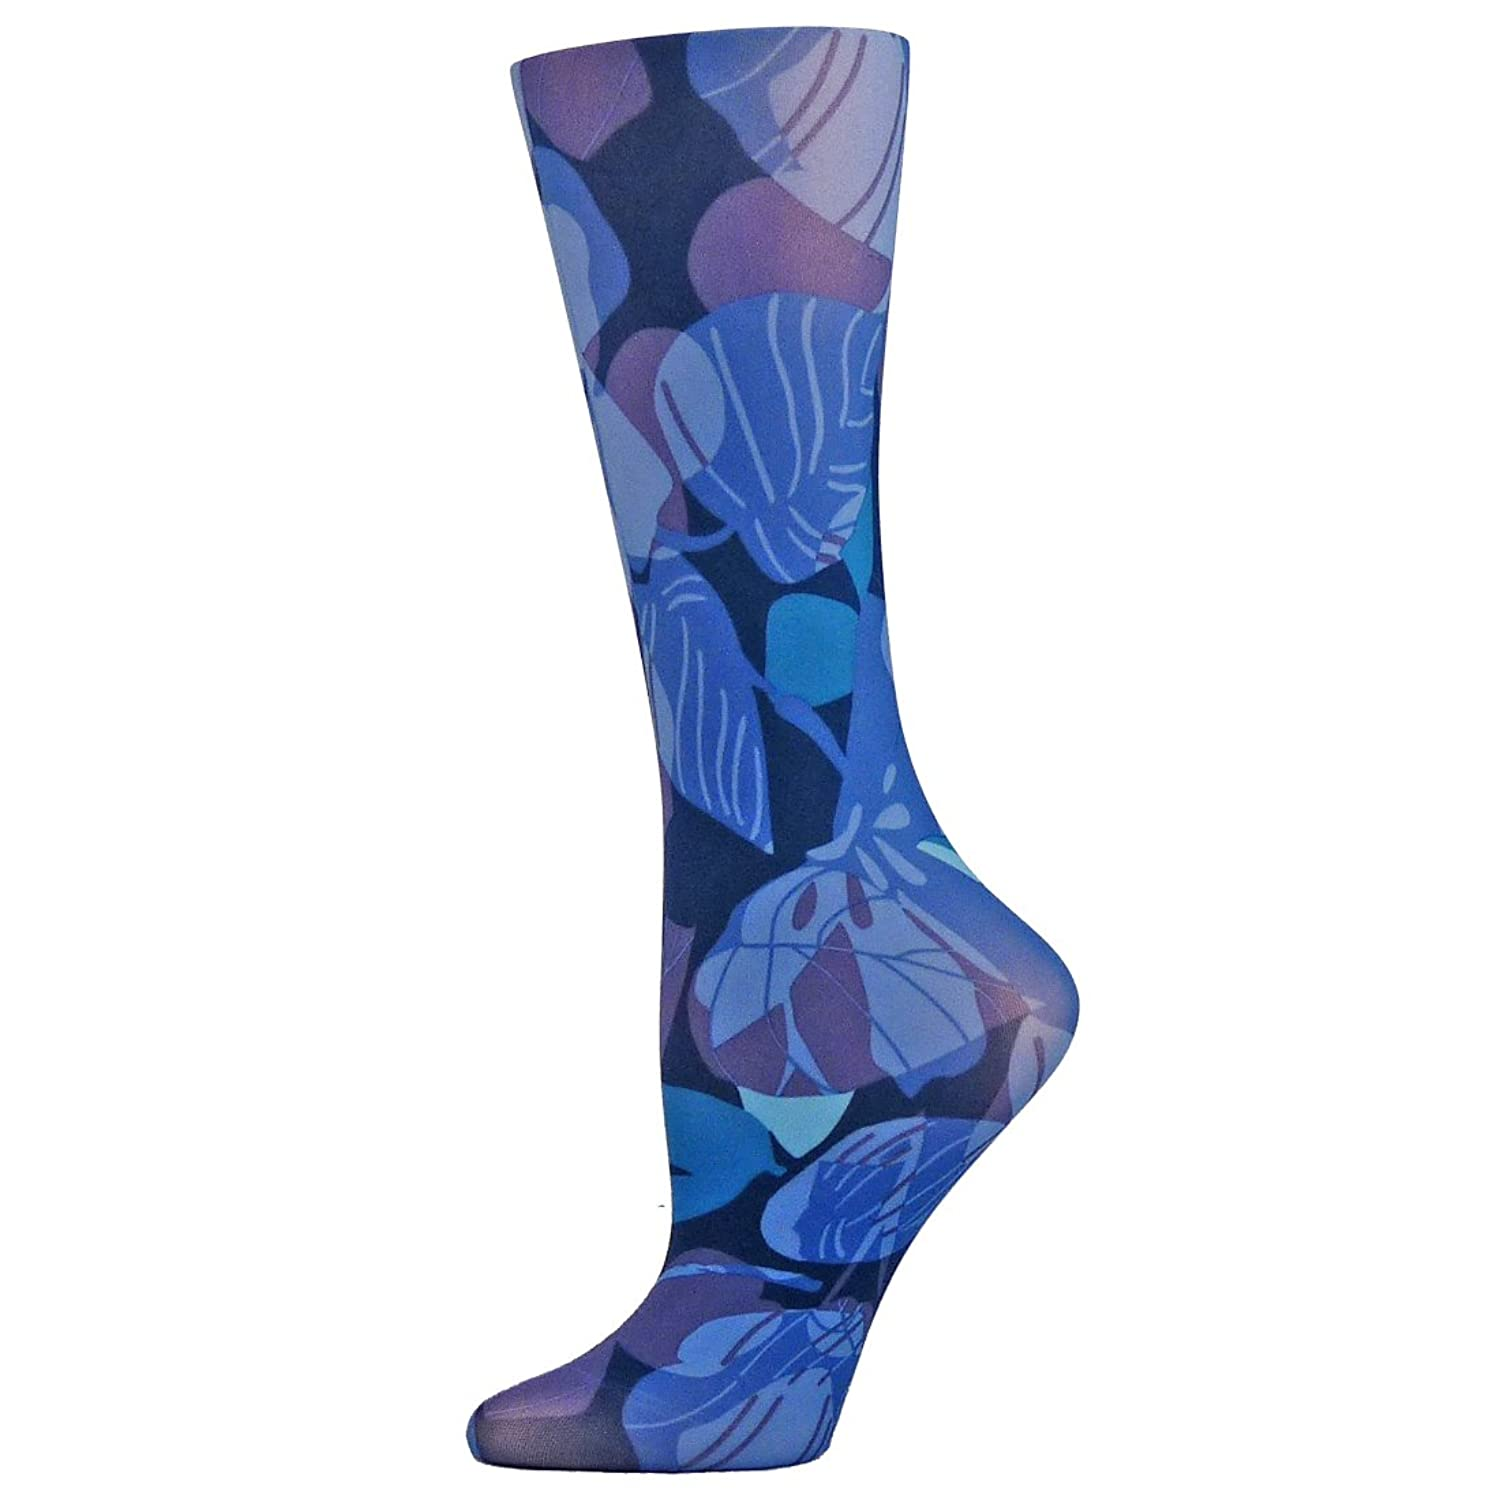 nouvella Sublimation Trouser Womens Socks - Floral Collection